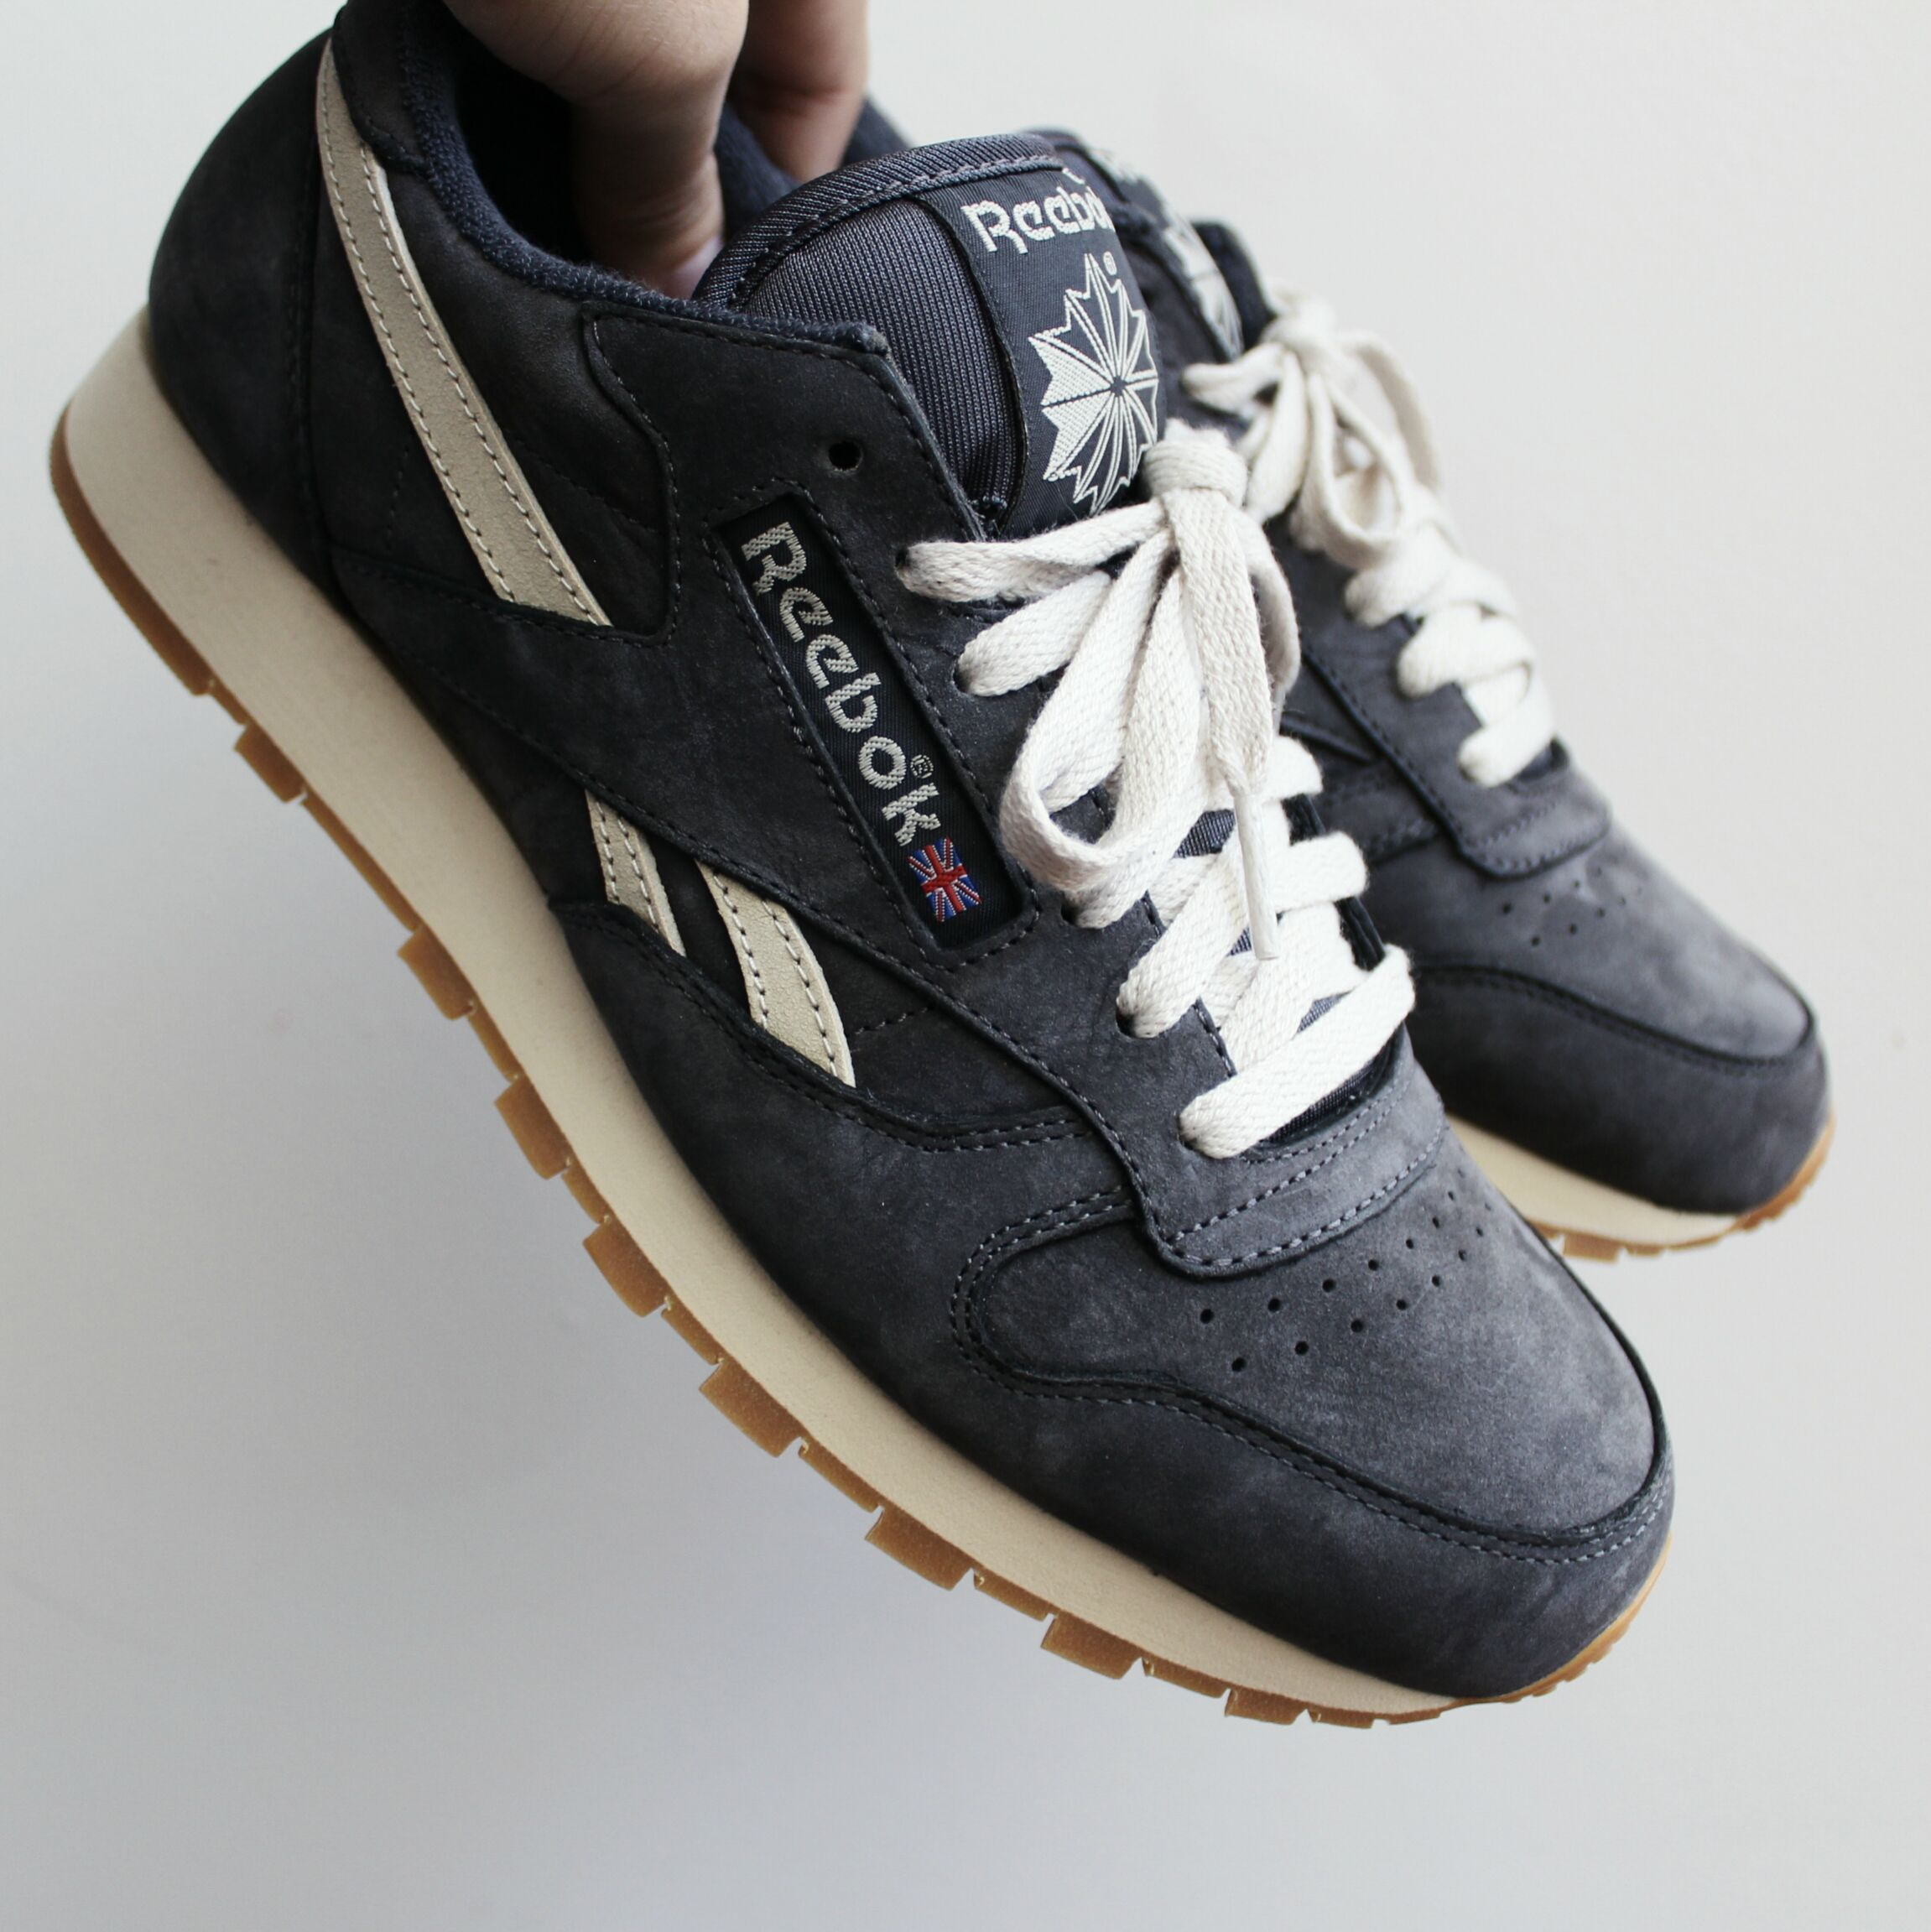 Reebok Classic Leather Vintage Retro Suede (J93612